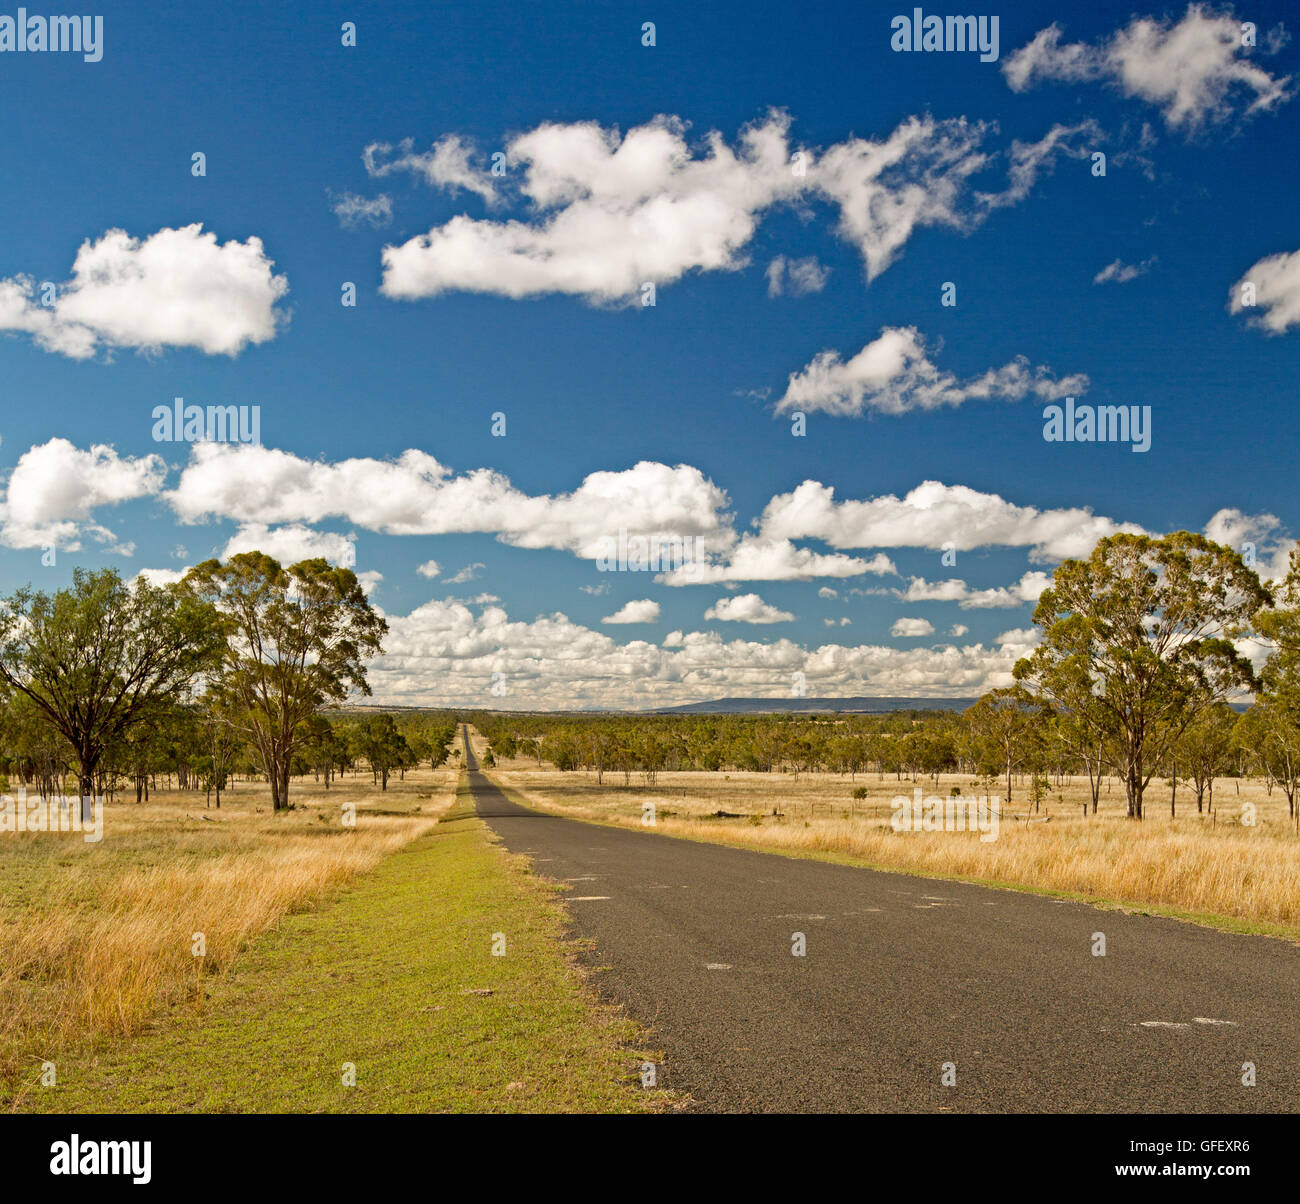 Long straight road leading through golden grasslands & eucalypt woodlands of outback Australia to distant horizon - Stock Image